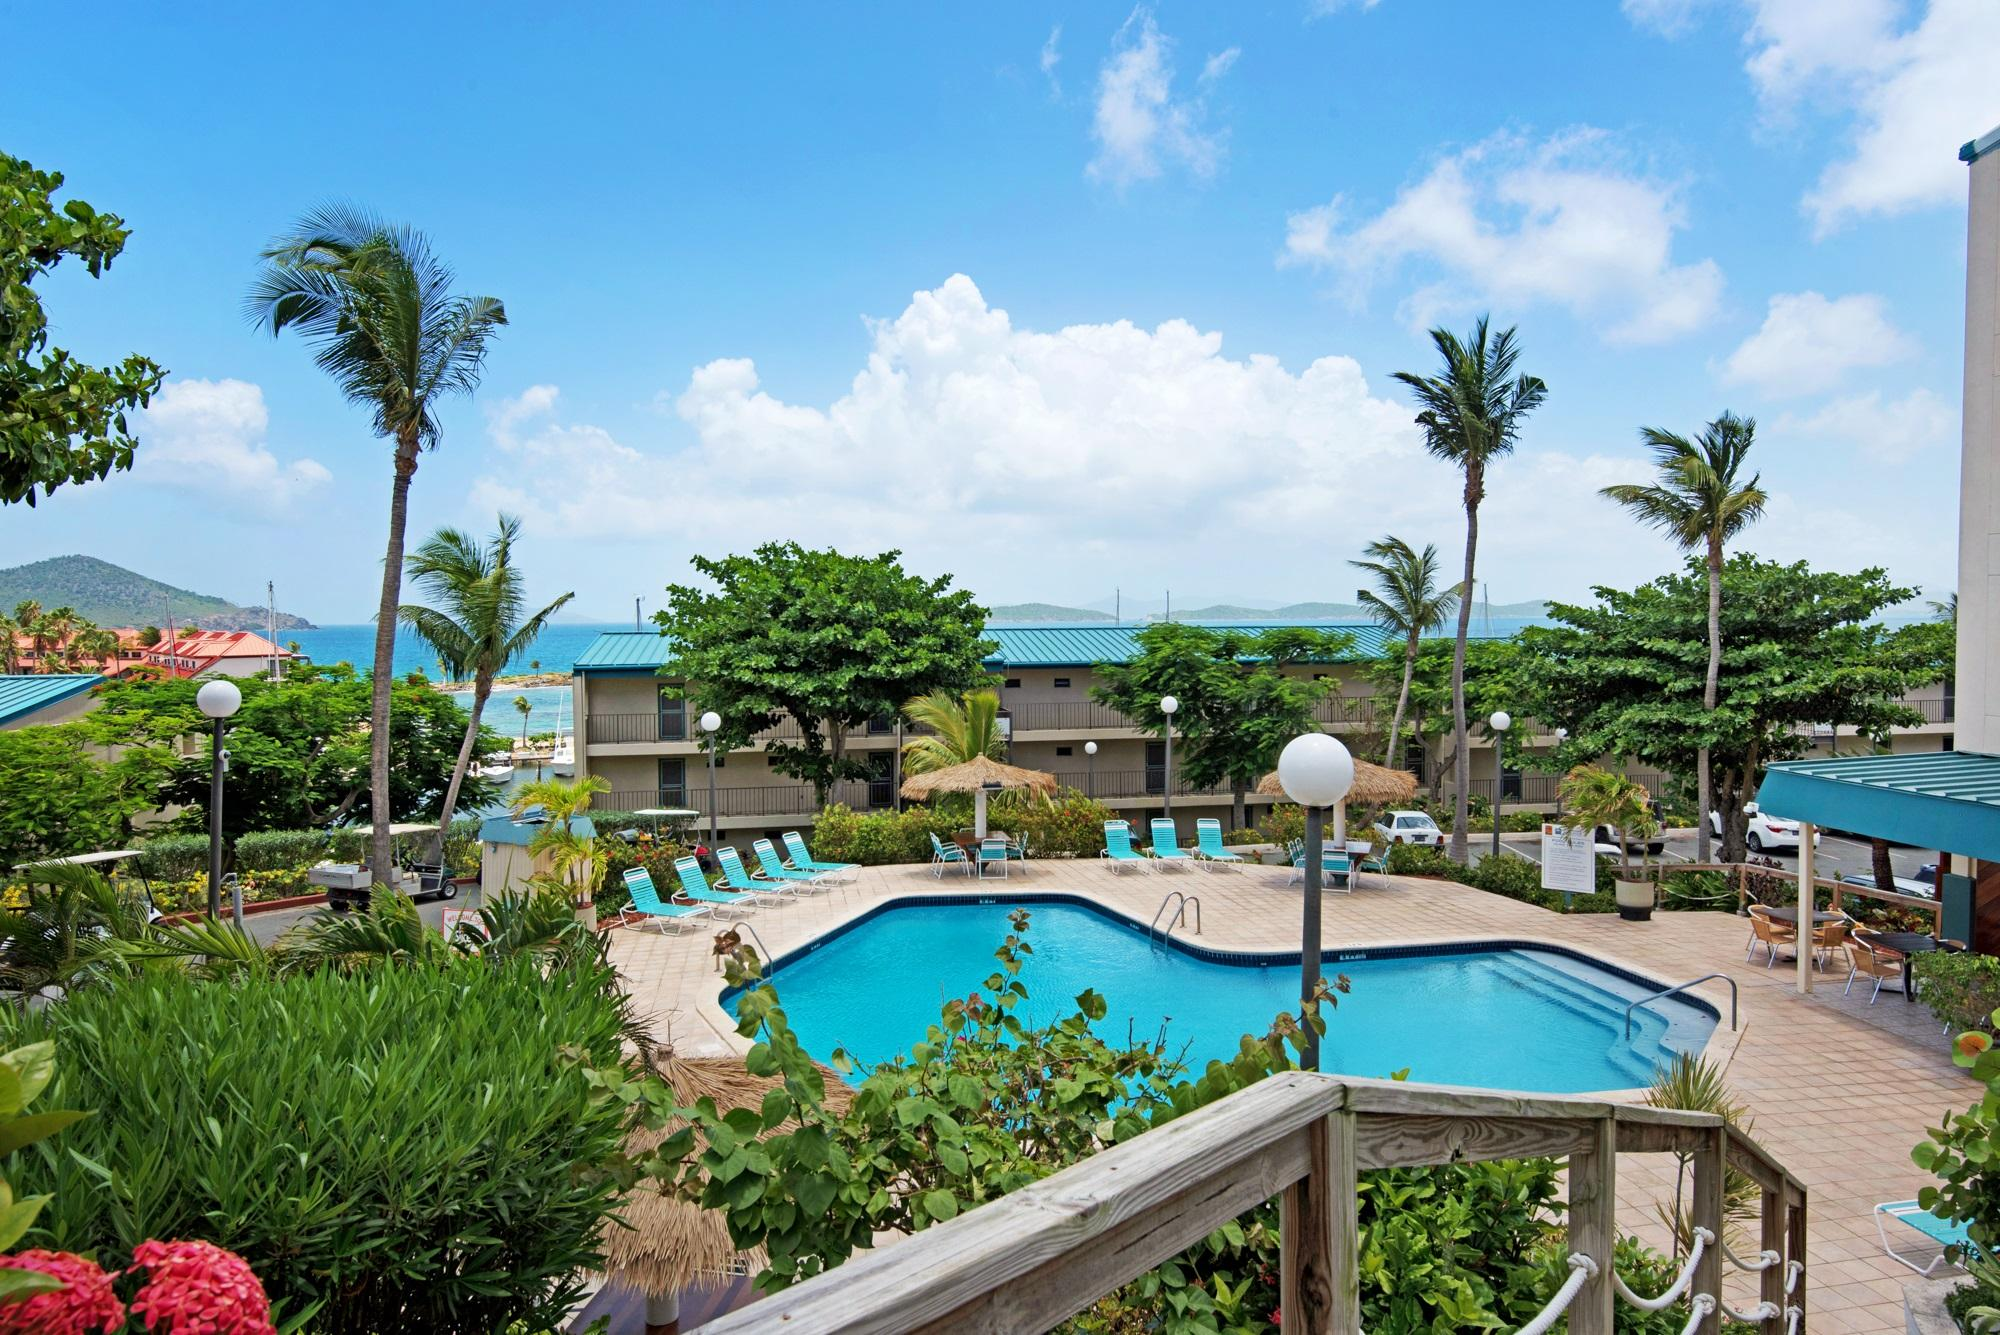 Additional photo for property listing at Sapphire Hill Village 192 Smith Bay EE Sapphire Hill Village 192 Smith Bay EE St Thomas, Virgin Islands 00802 Виргинские Острова